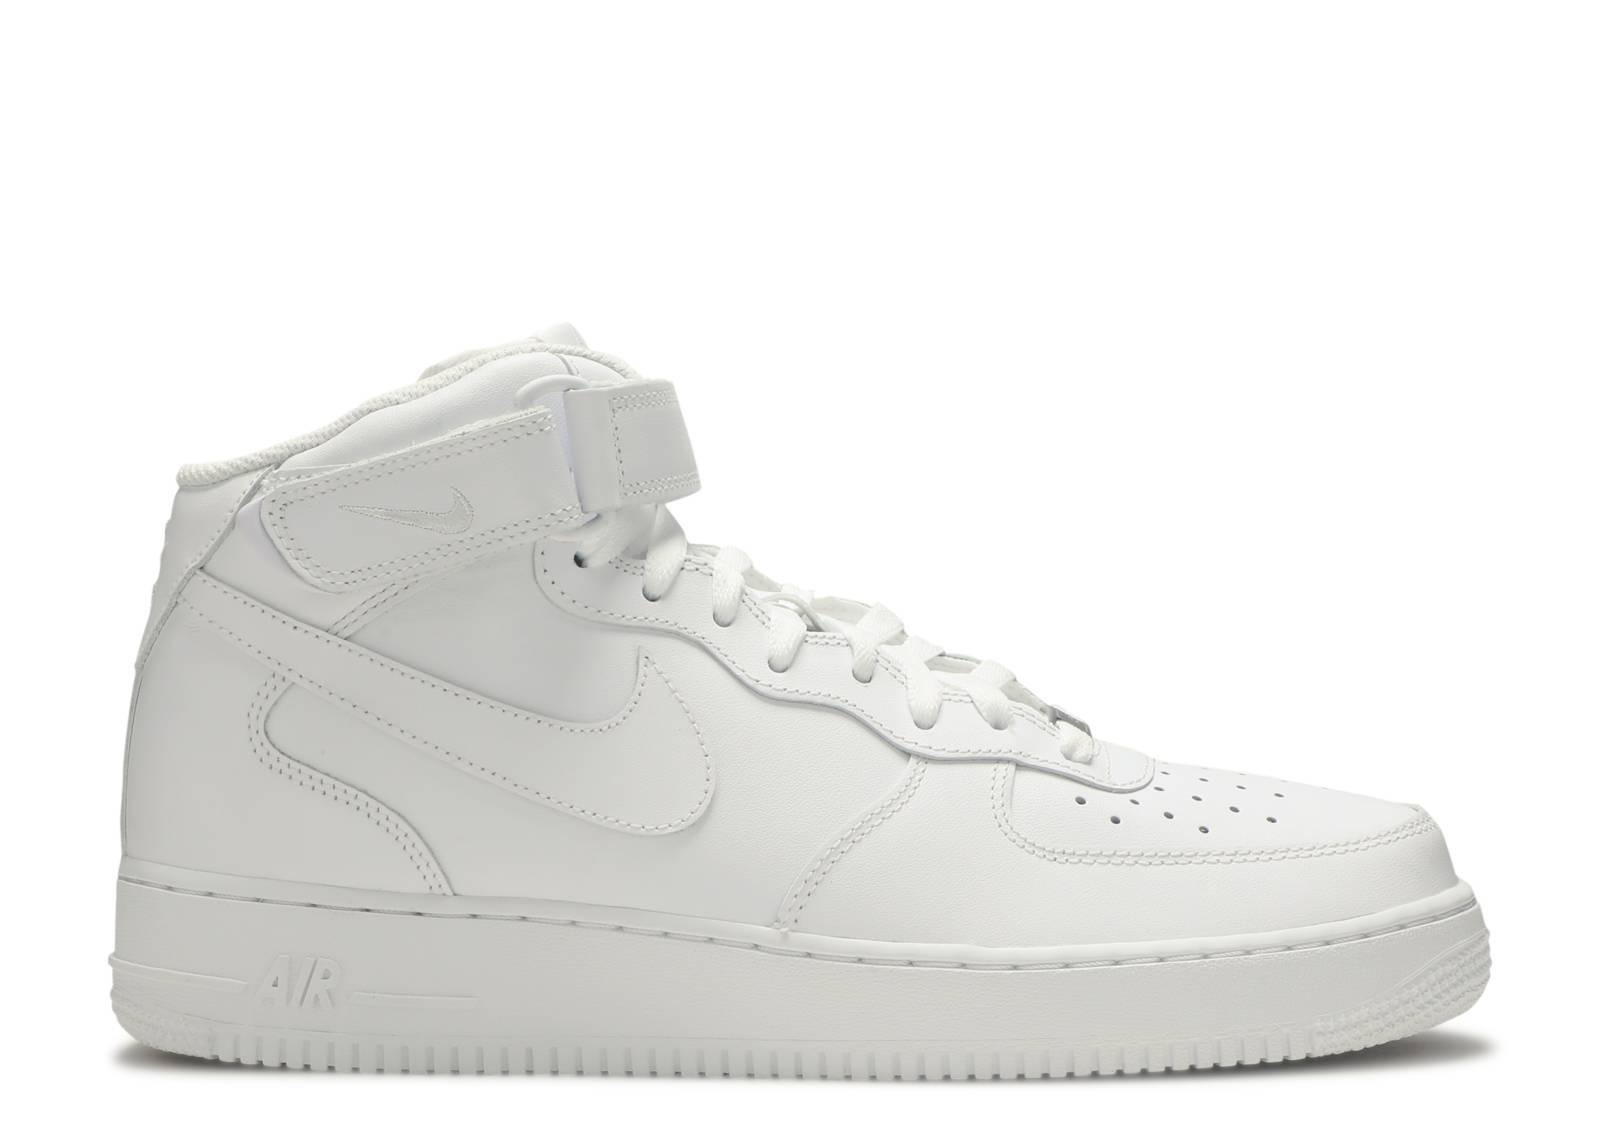 Air Force 1 Mid 07 Trainers In White 315123-111 - White Nike 5FdYQT